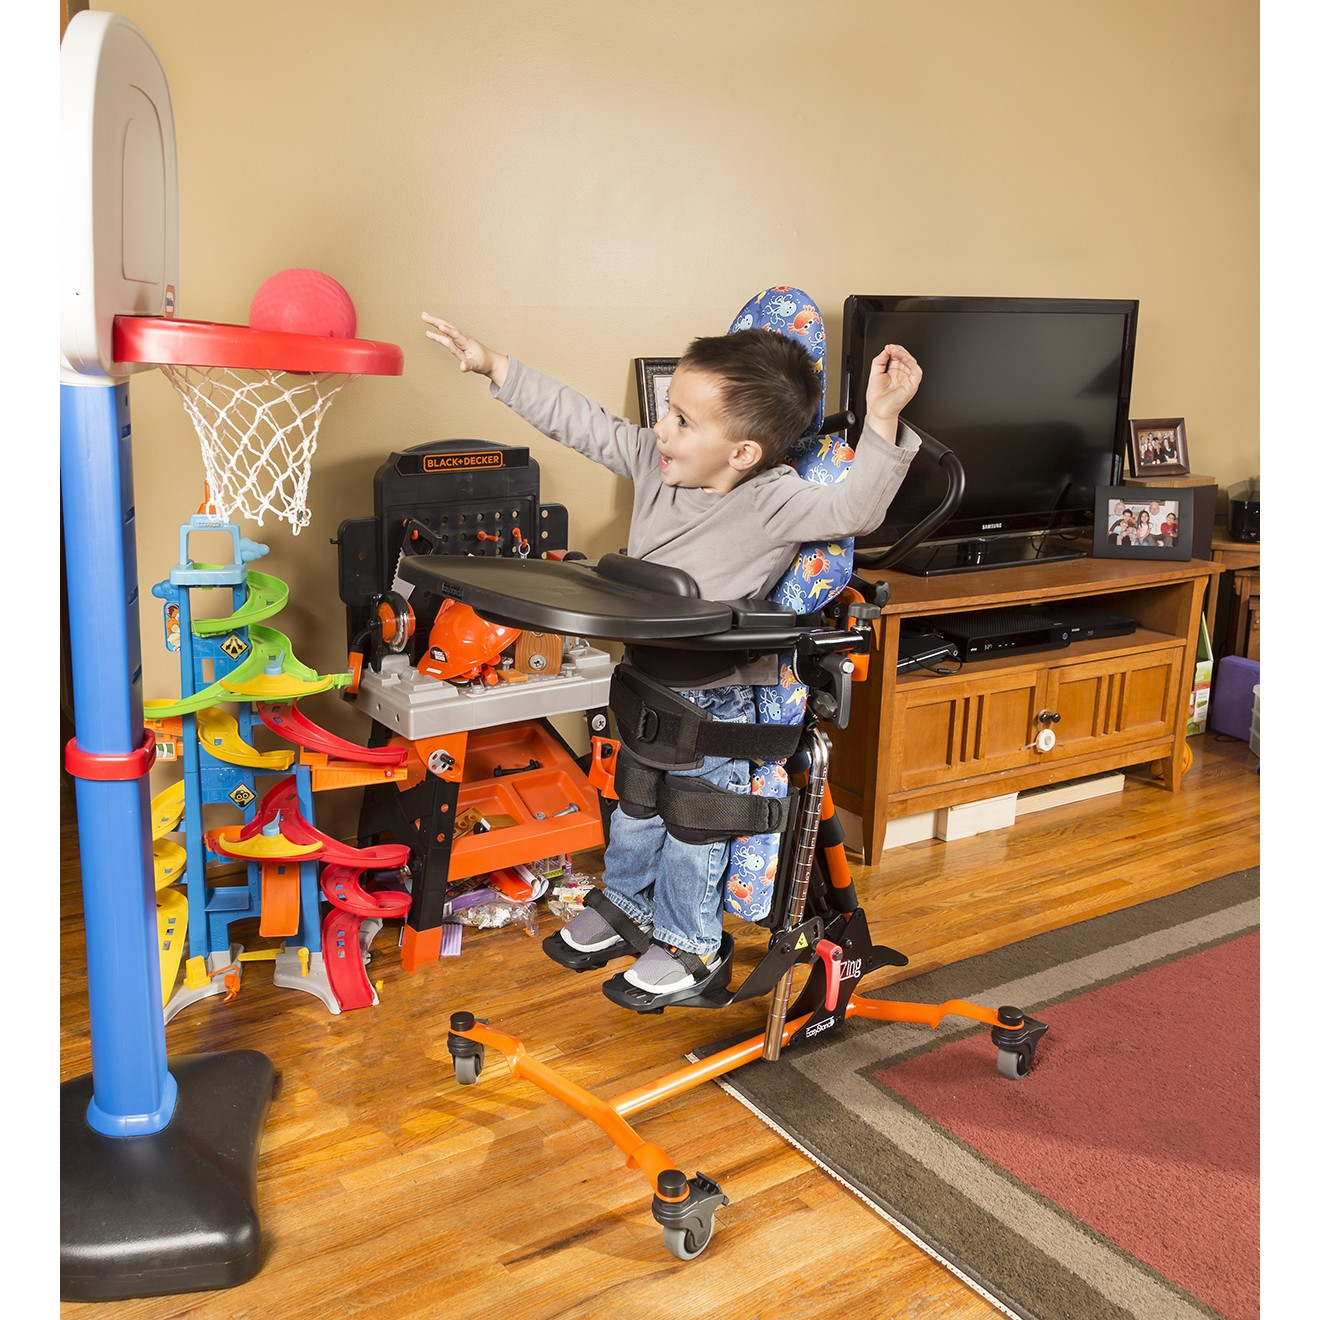 Child standing on a EasyStand Zing Supine TT Size 1 Playing Basketball